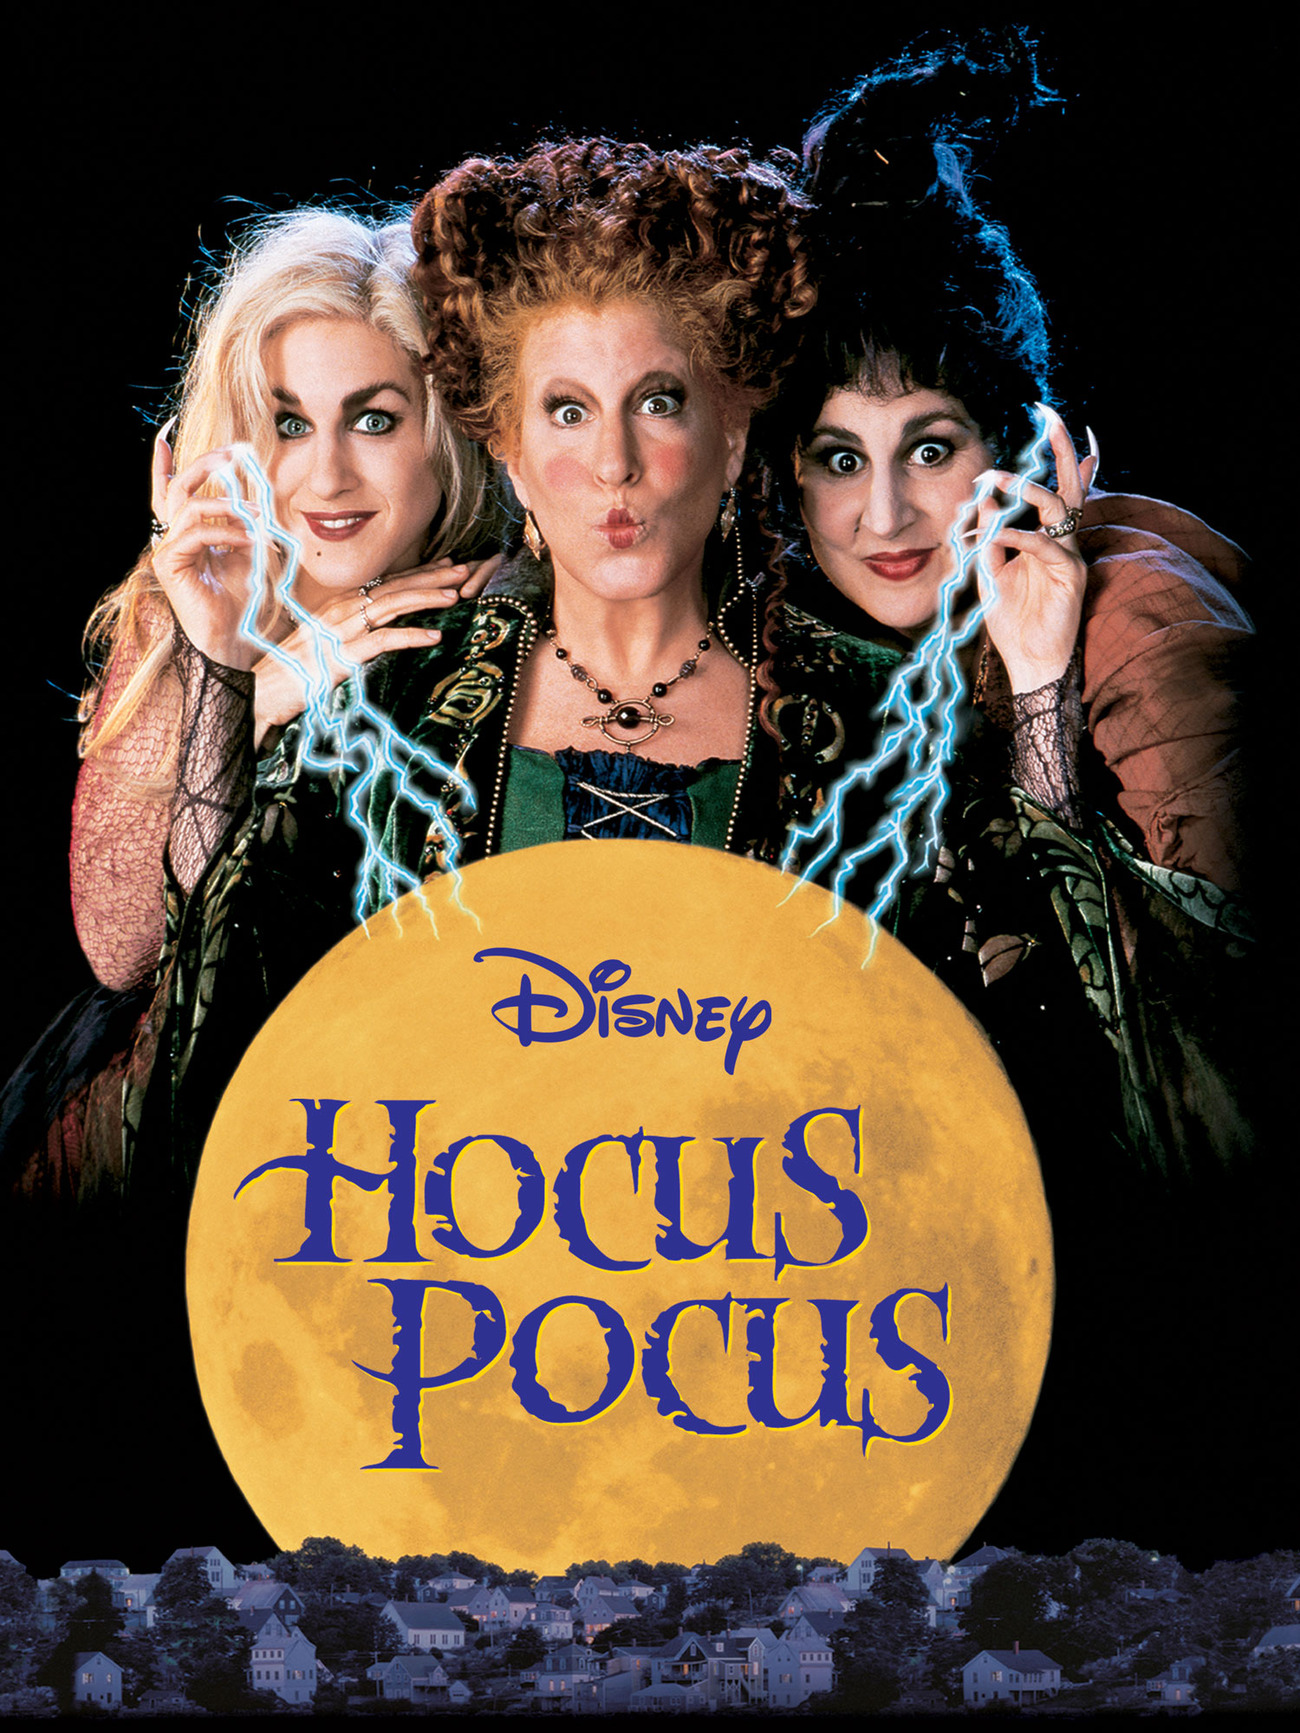 halloween movie bette midler sarah jessica parker